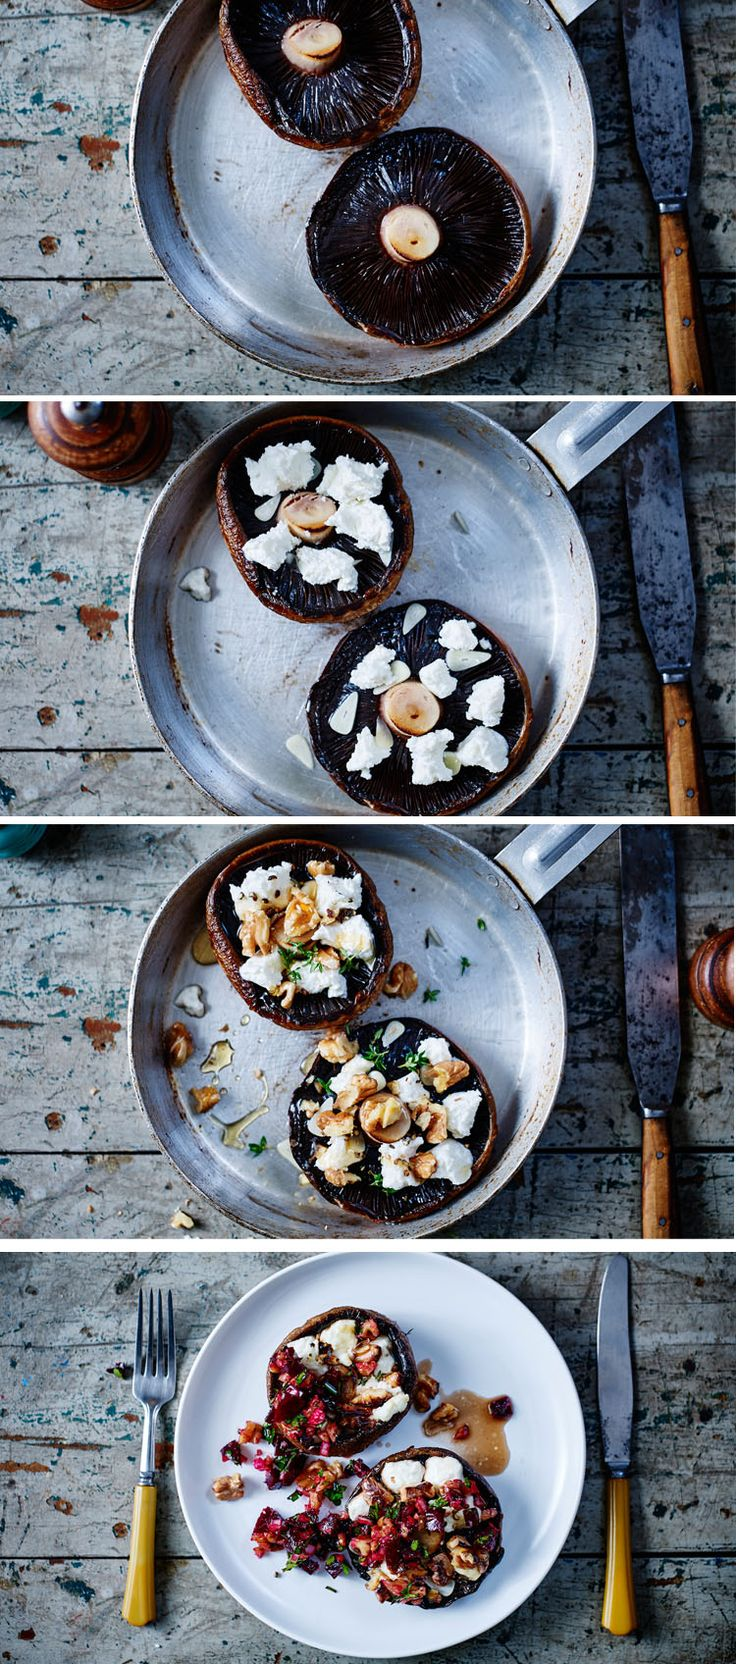 Make an easy, luxurious brunch for 2 with these grilled mushrooms with goats' cheese, walnuts and beetroot salsa.